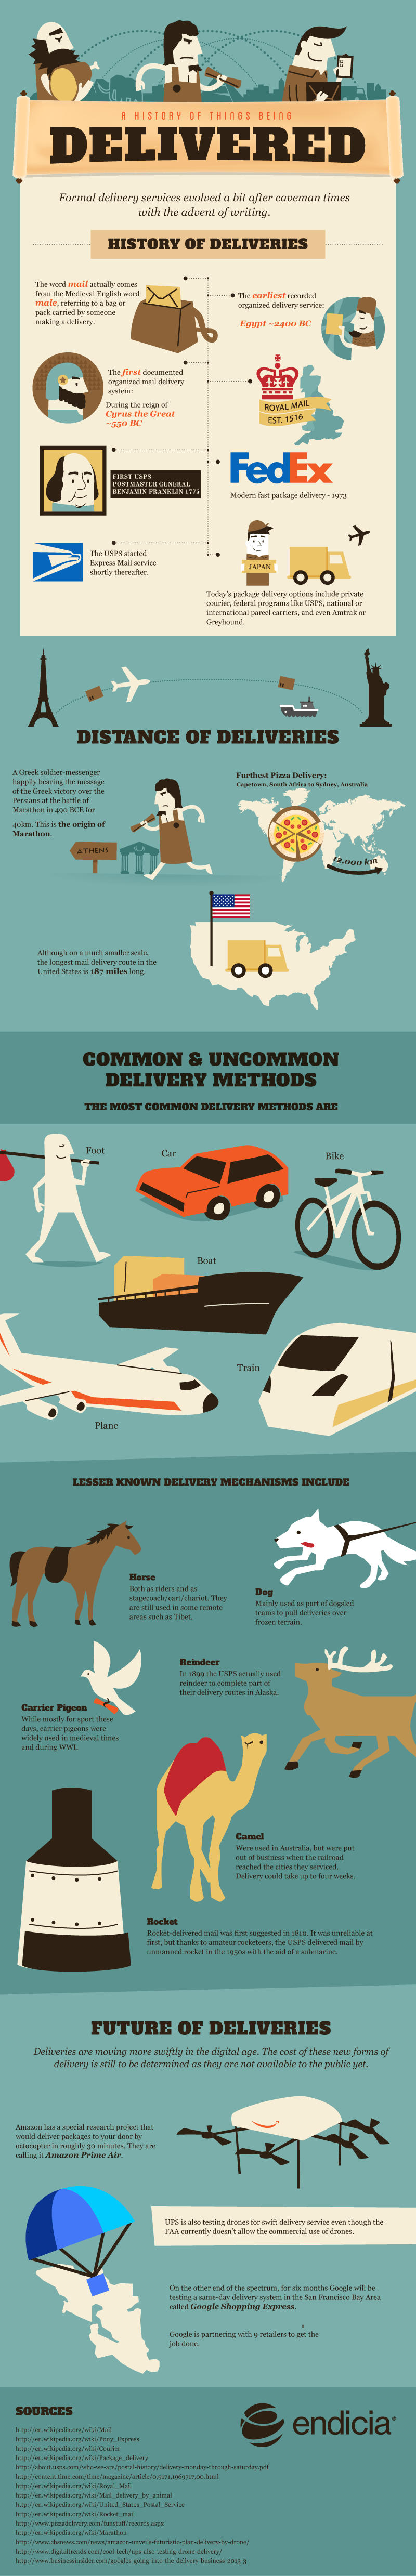 Infographic on history of deliveries and shipping solutions like USPS shipping